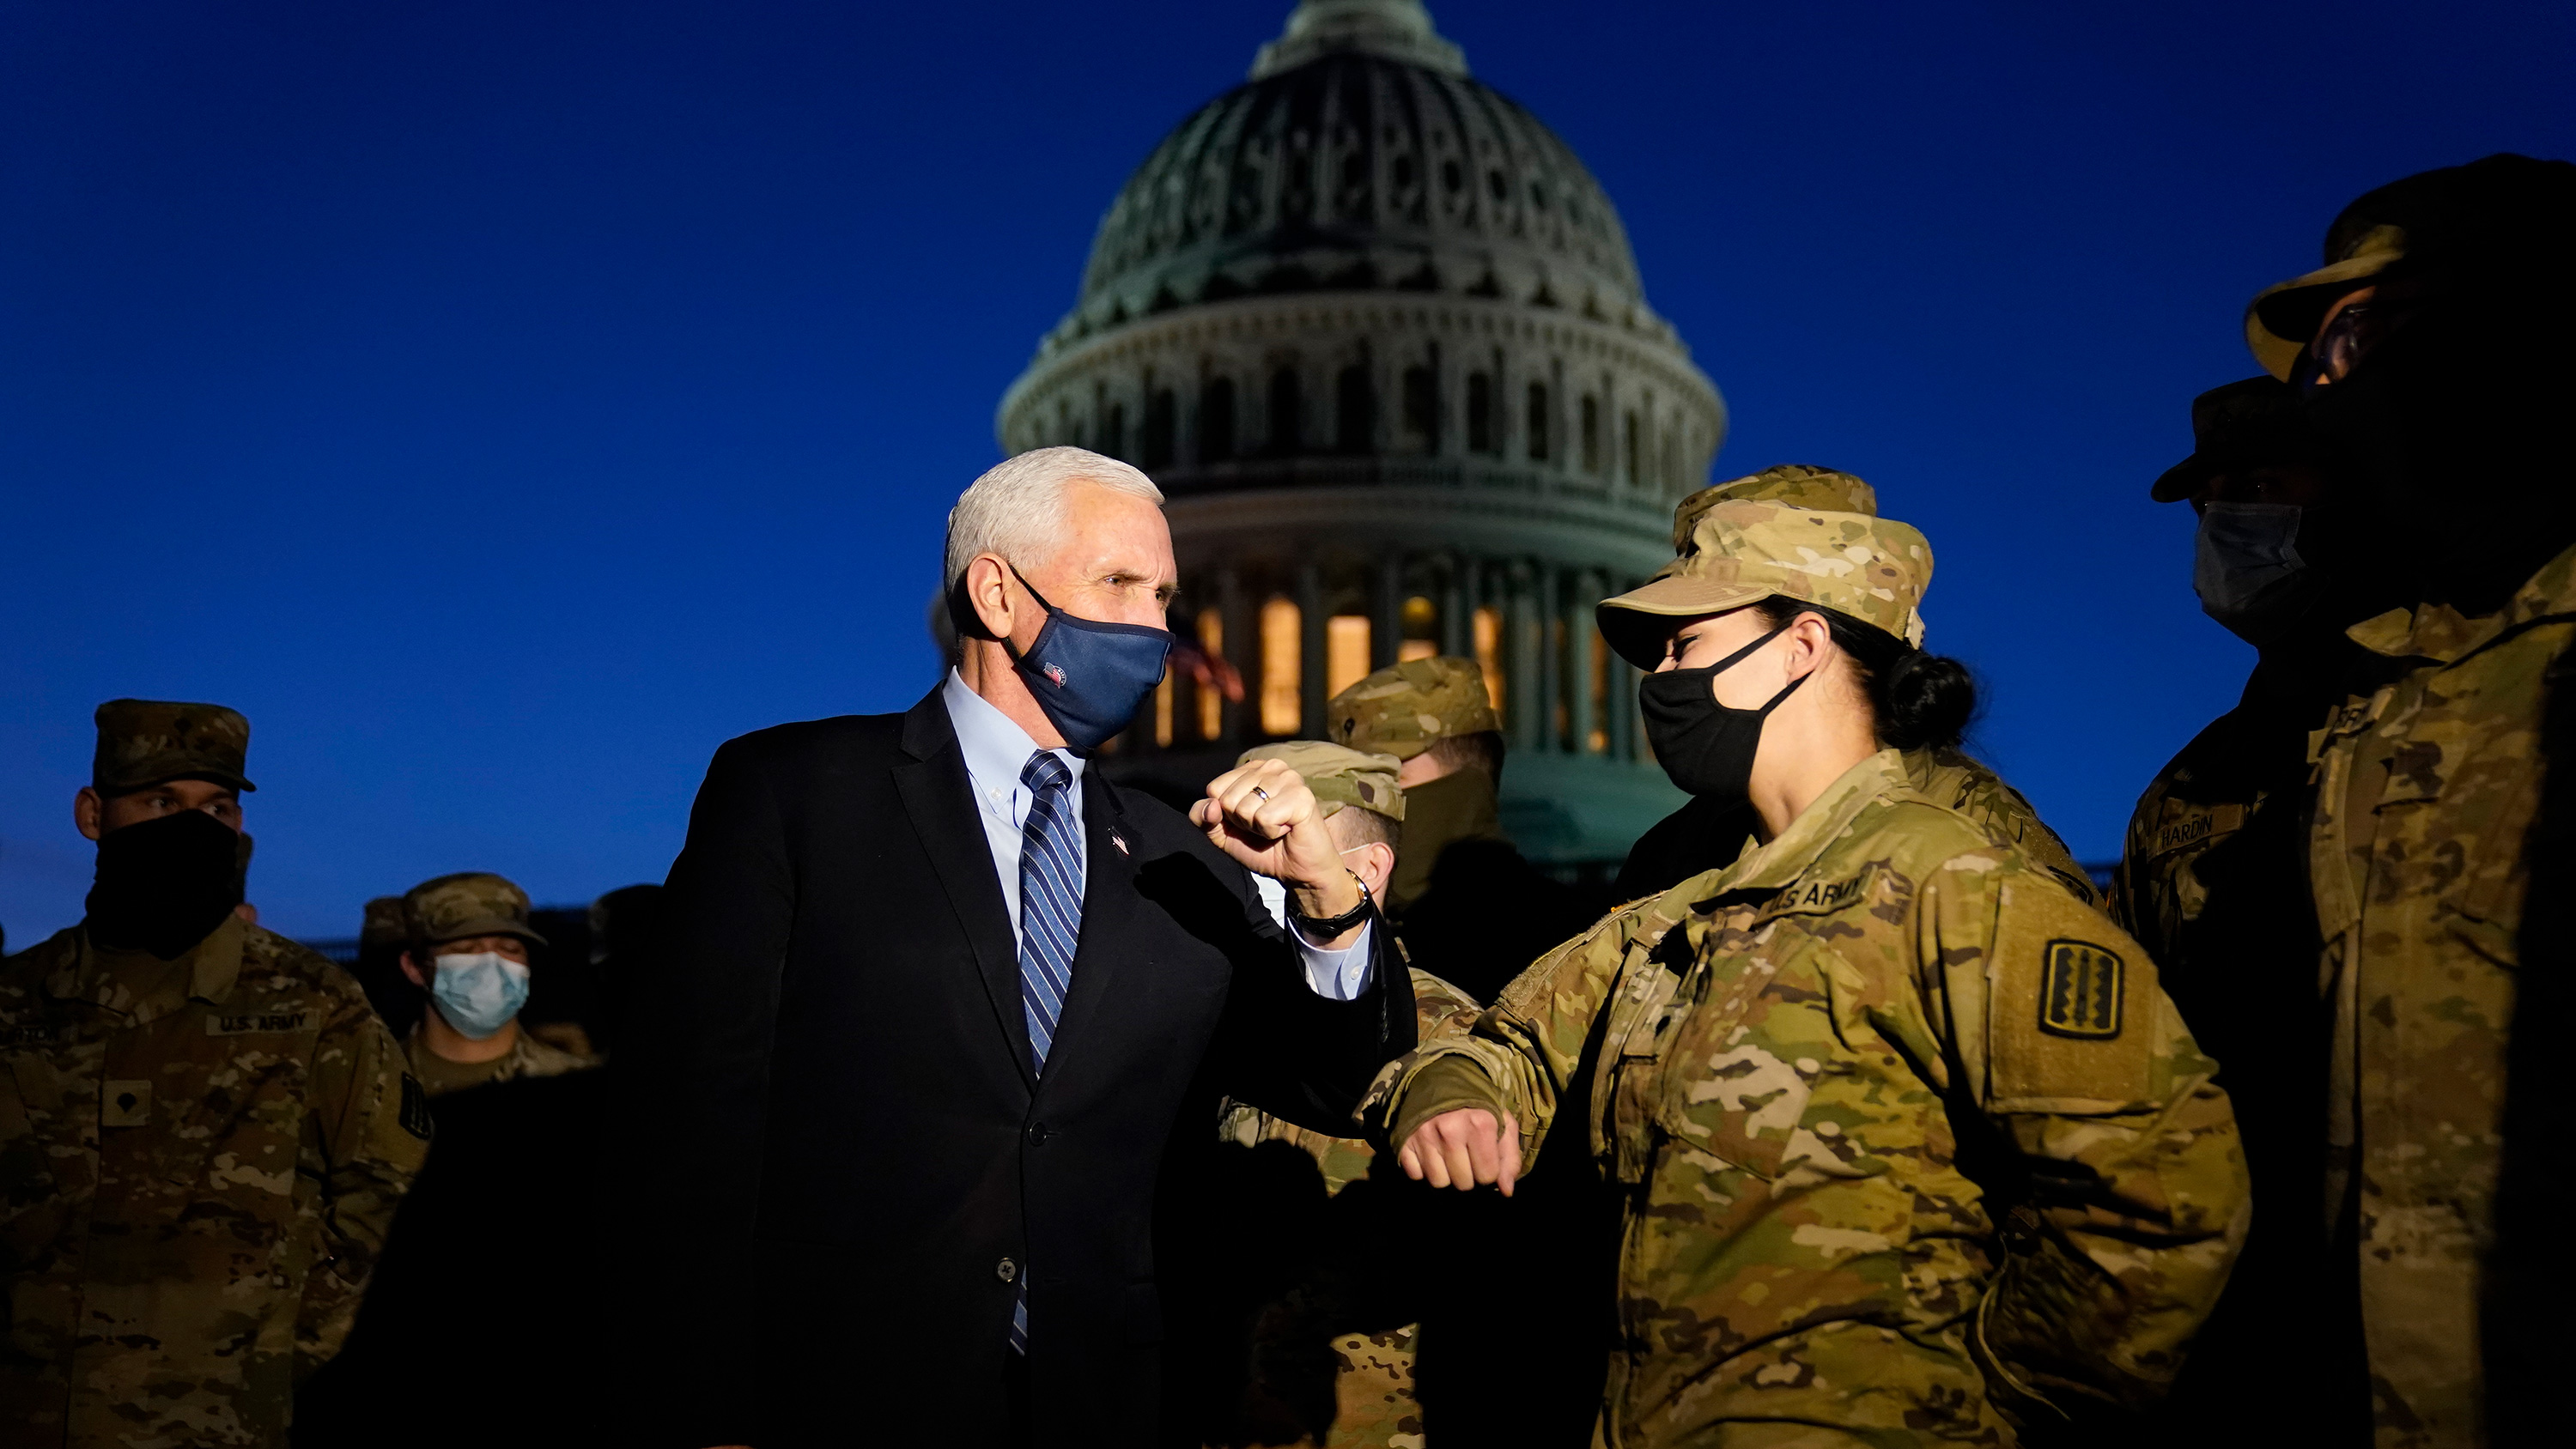 Vice President Mike Pence visits with National Guard members outside the US Capitol on Thursday, January 14 in Washington, DC.